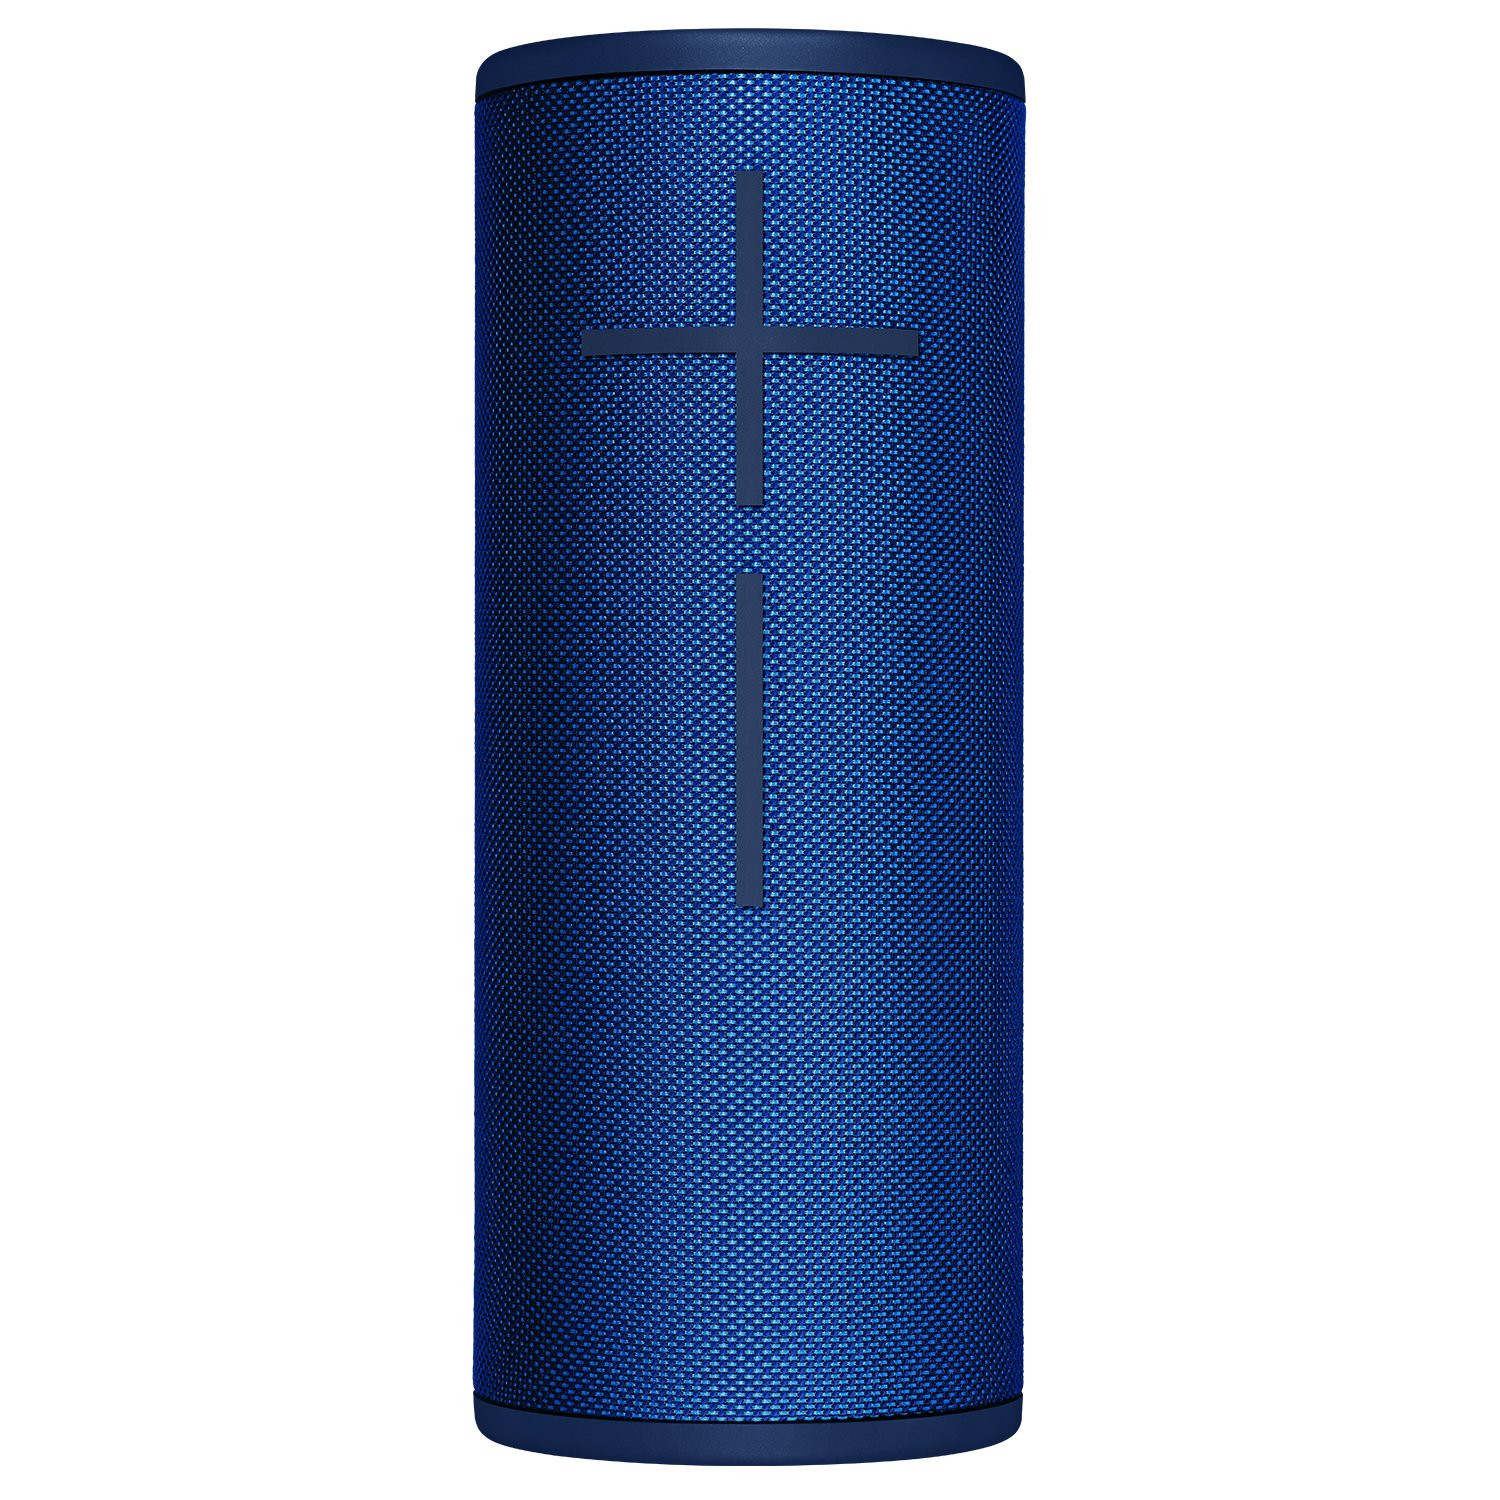 Ultimate Ears BOOM 3 Portable Waterproof Bluetooth Speaker - Lagoon Blue by Ultimate Ears